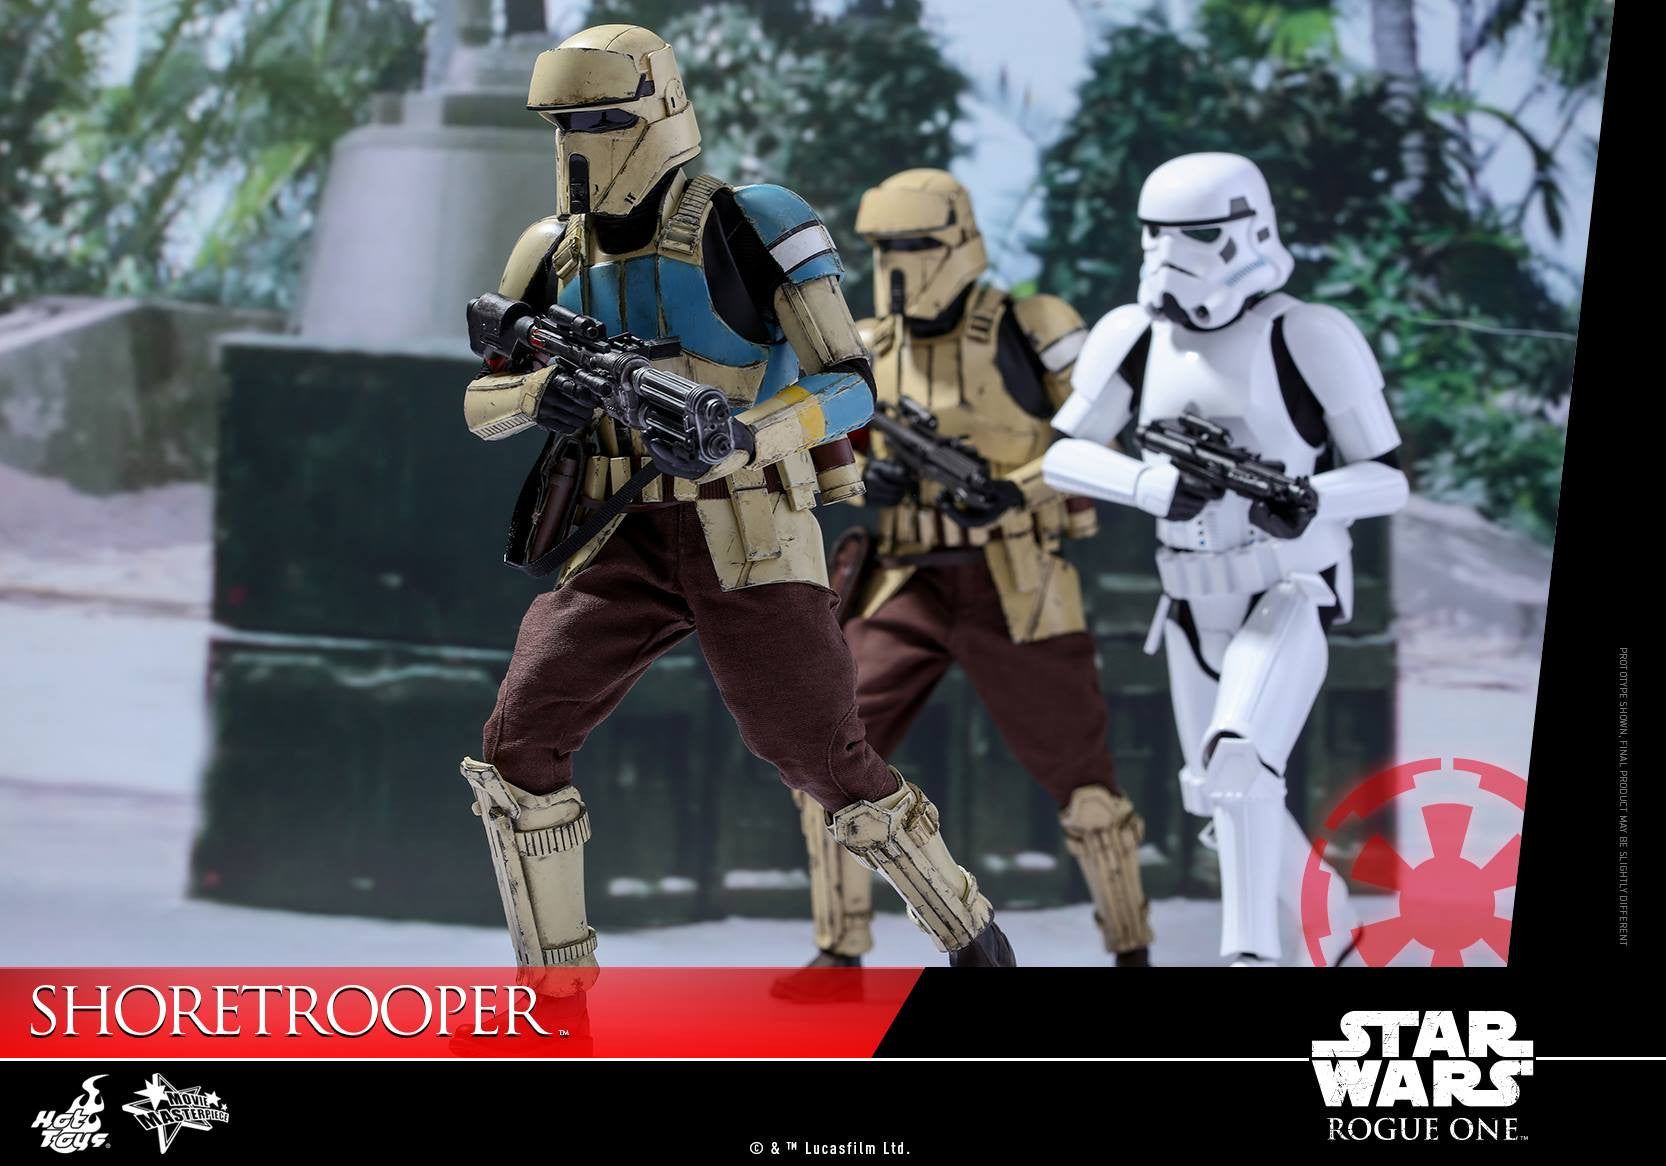 Hot Toys - MMS389 - Rogue One: A Star Wars Story - Shoretrooper - Marvelous Toys - 3